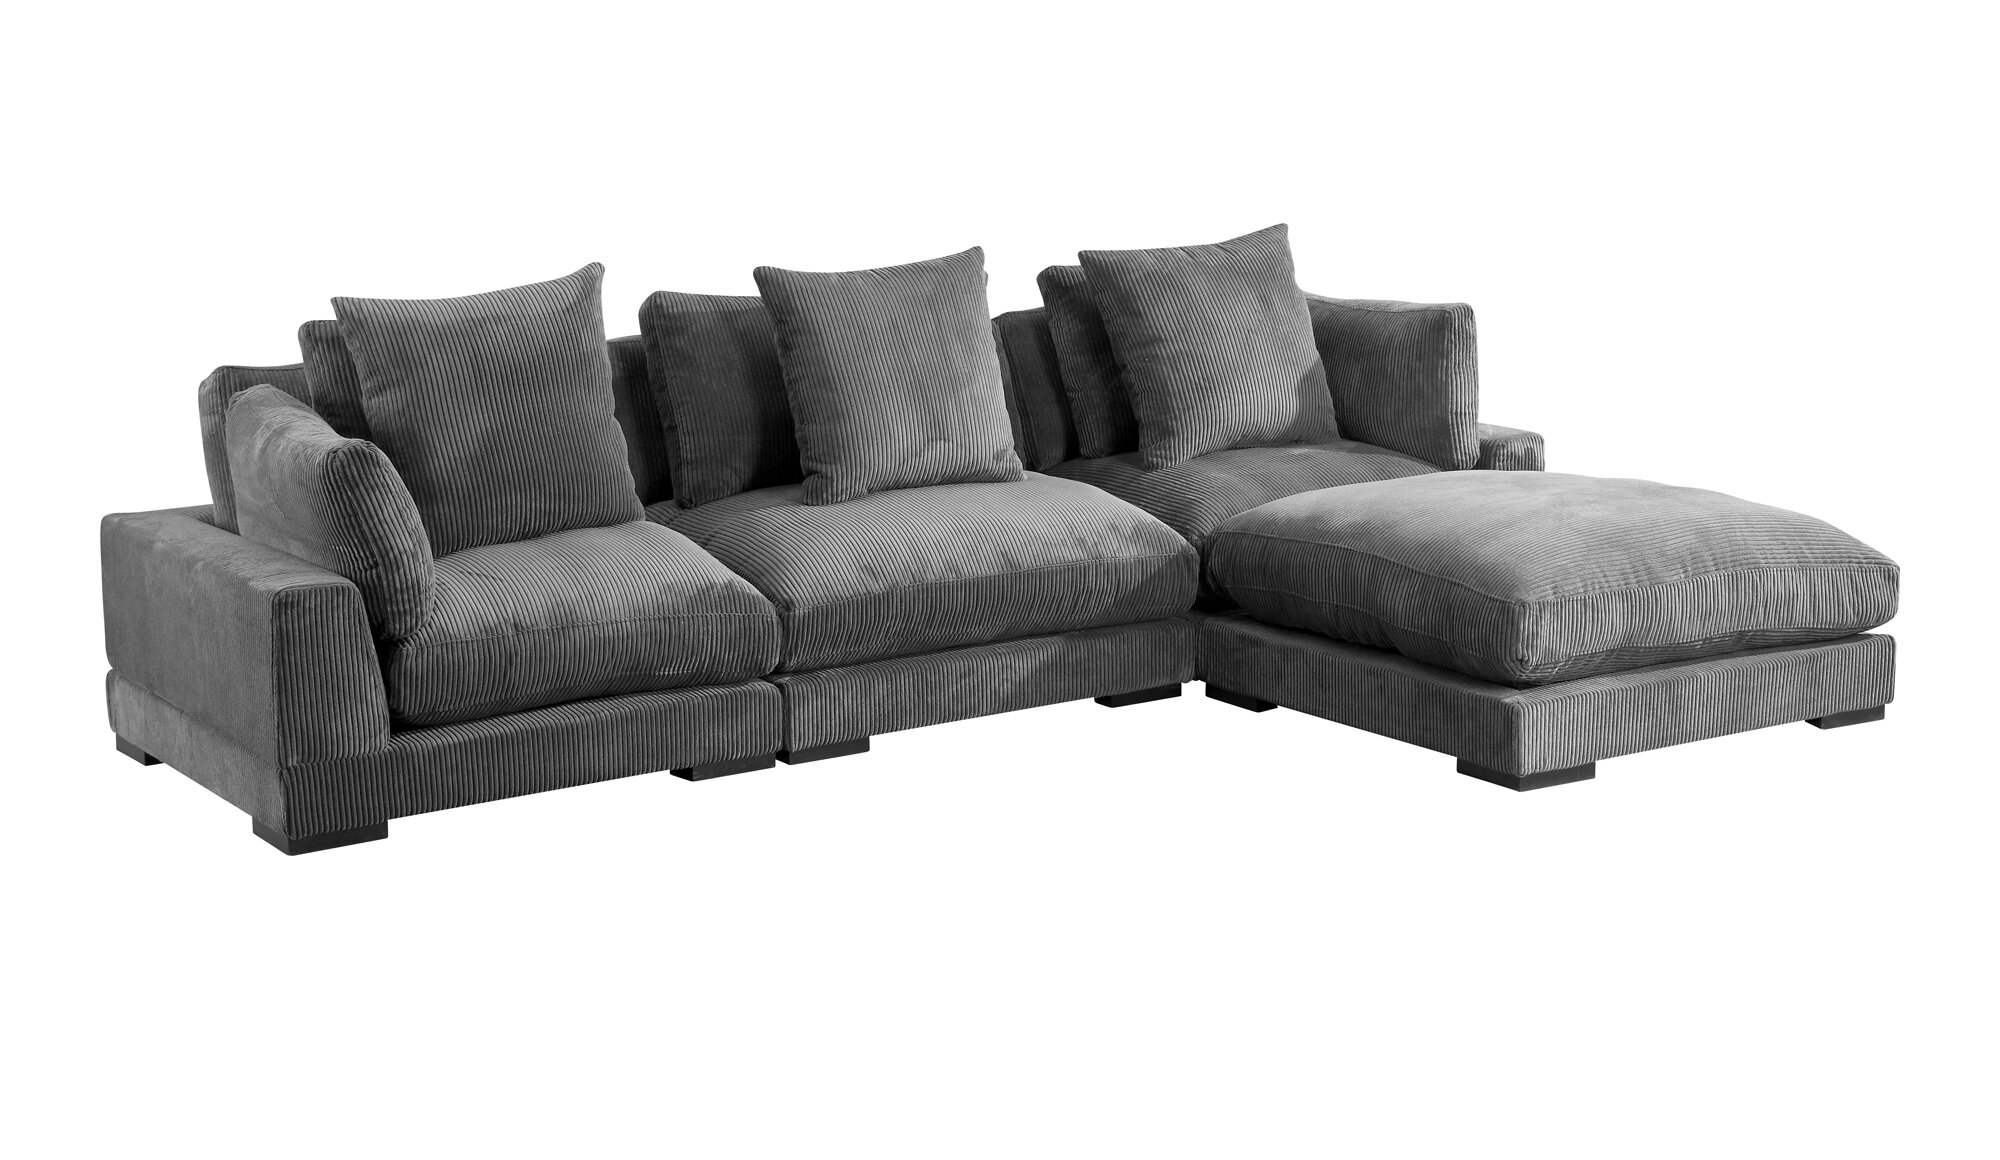 Red Barrel Studio Lytle 130 5 Wide Reversible Modular Sofa Chaise With Ottoman Wayfair